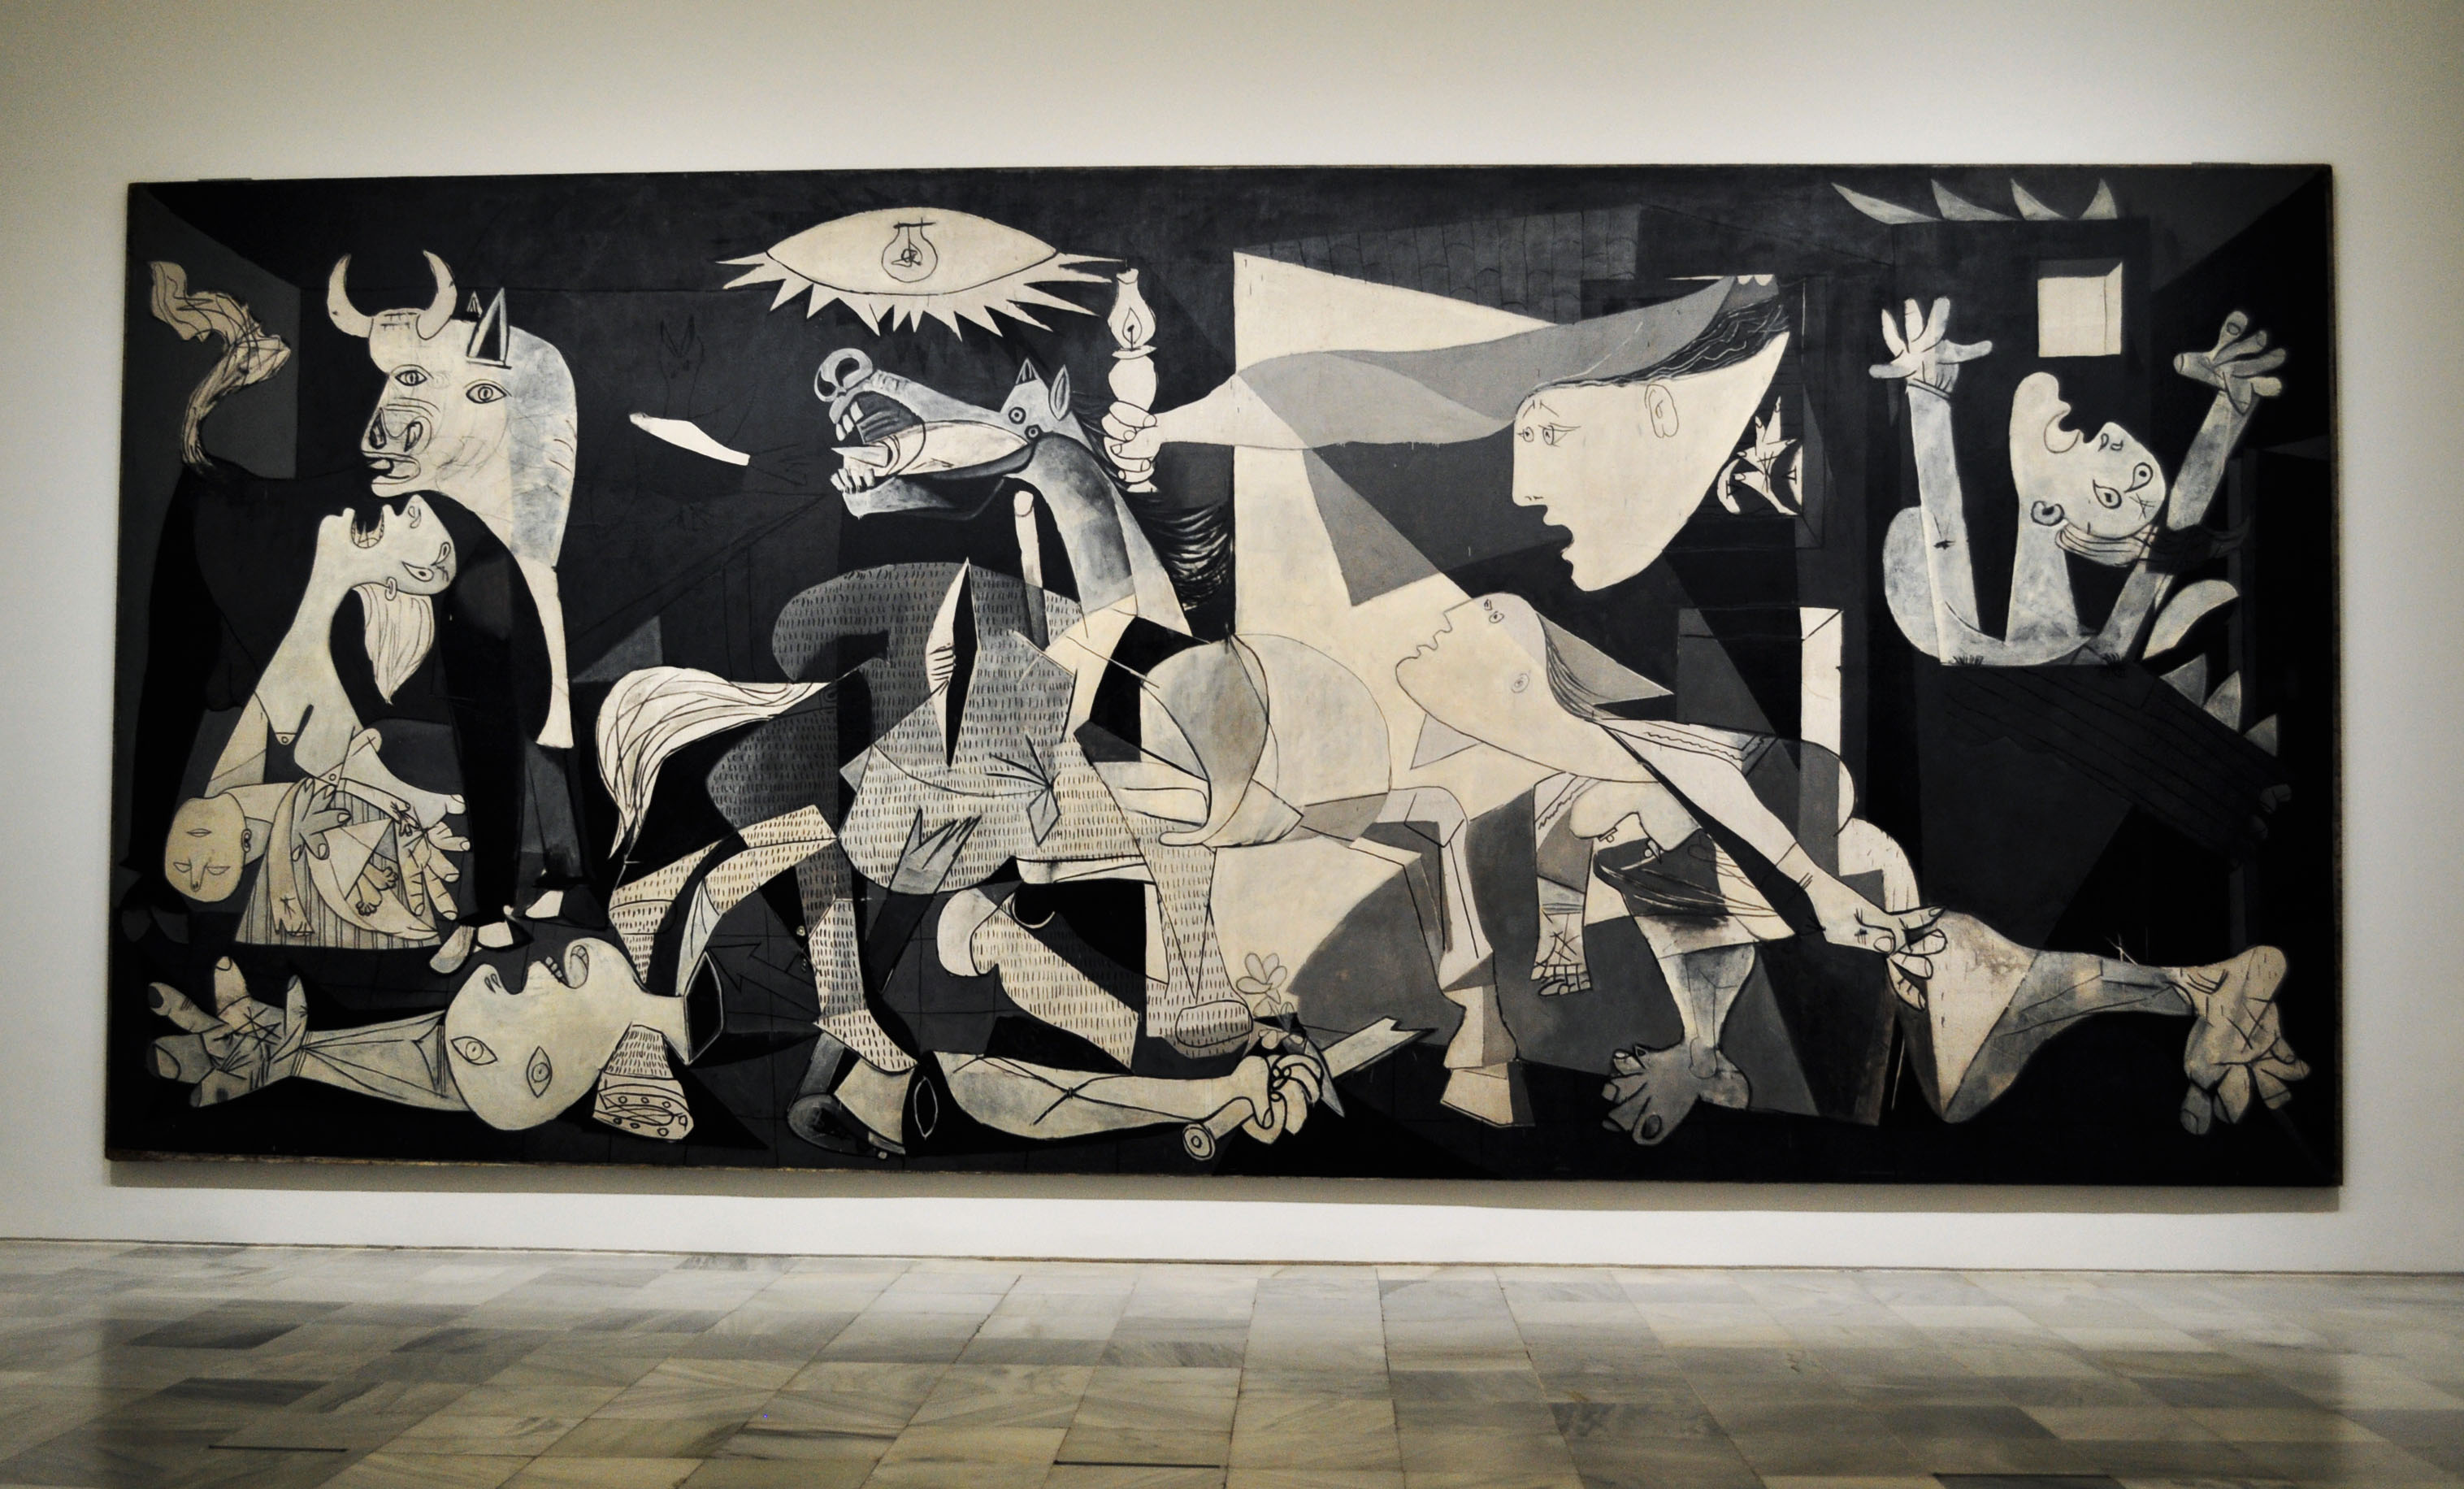 madrid-pablo-picasso-guernica